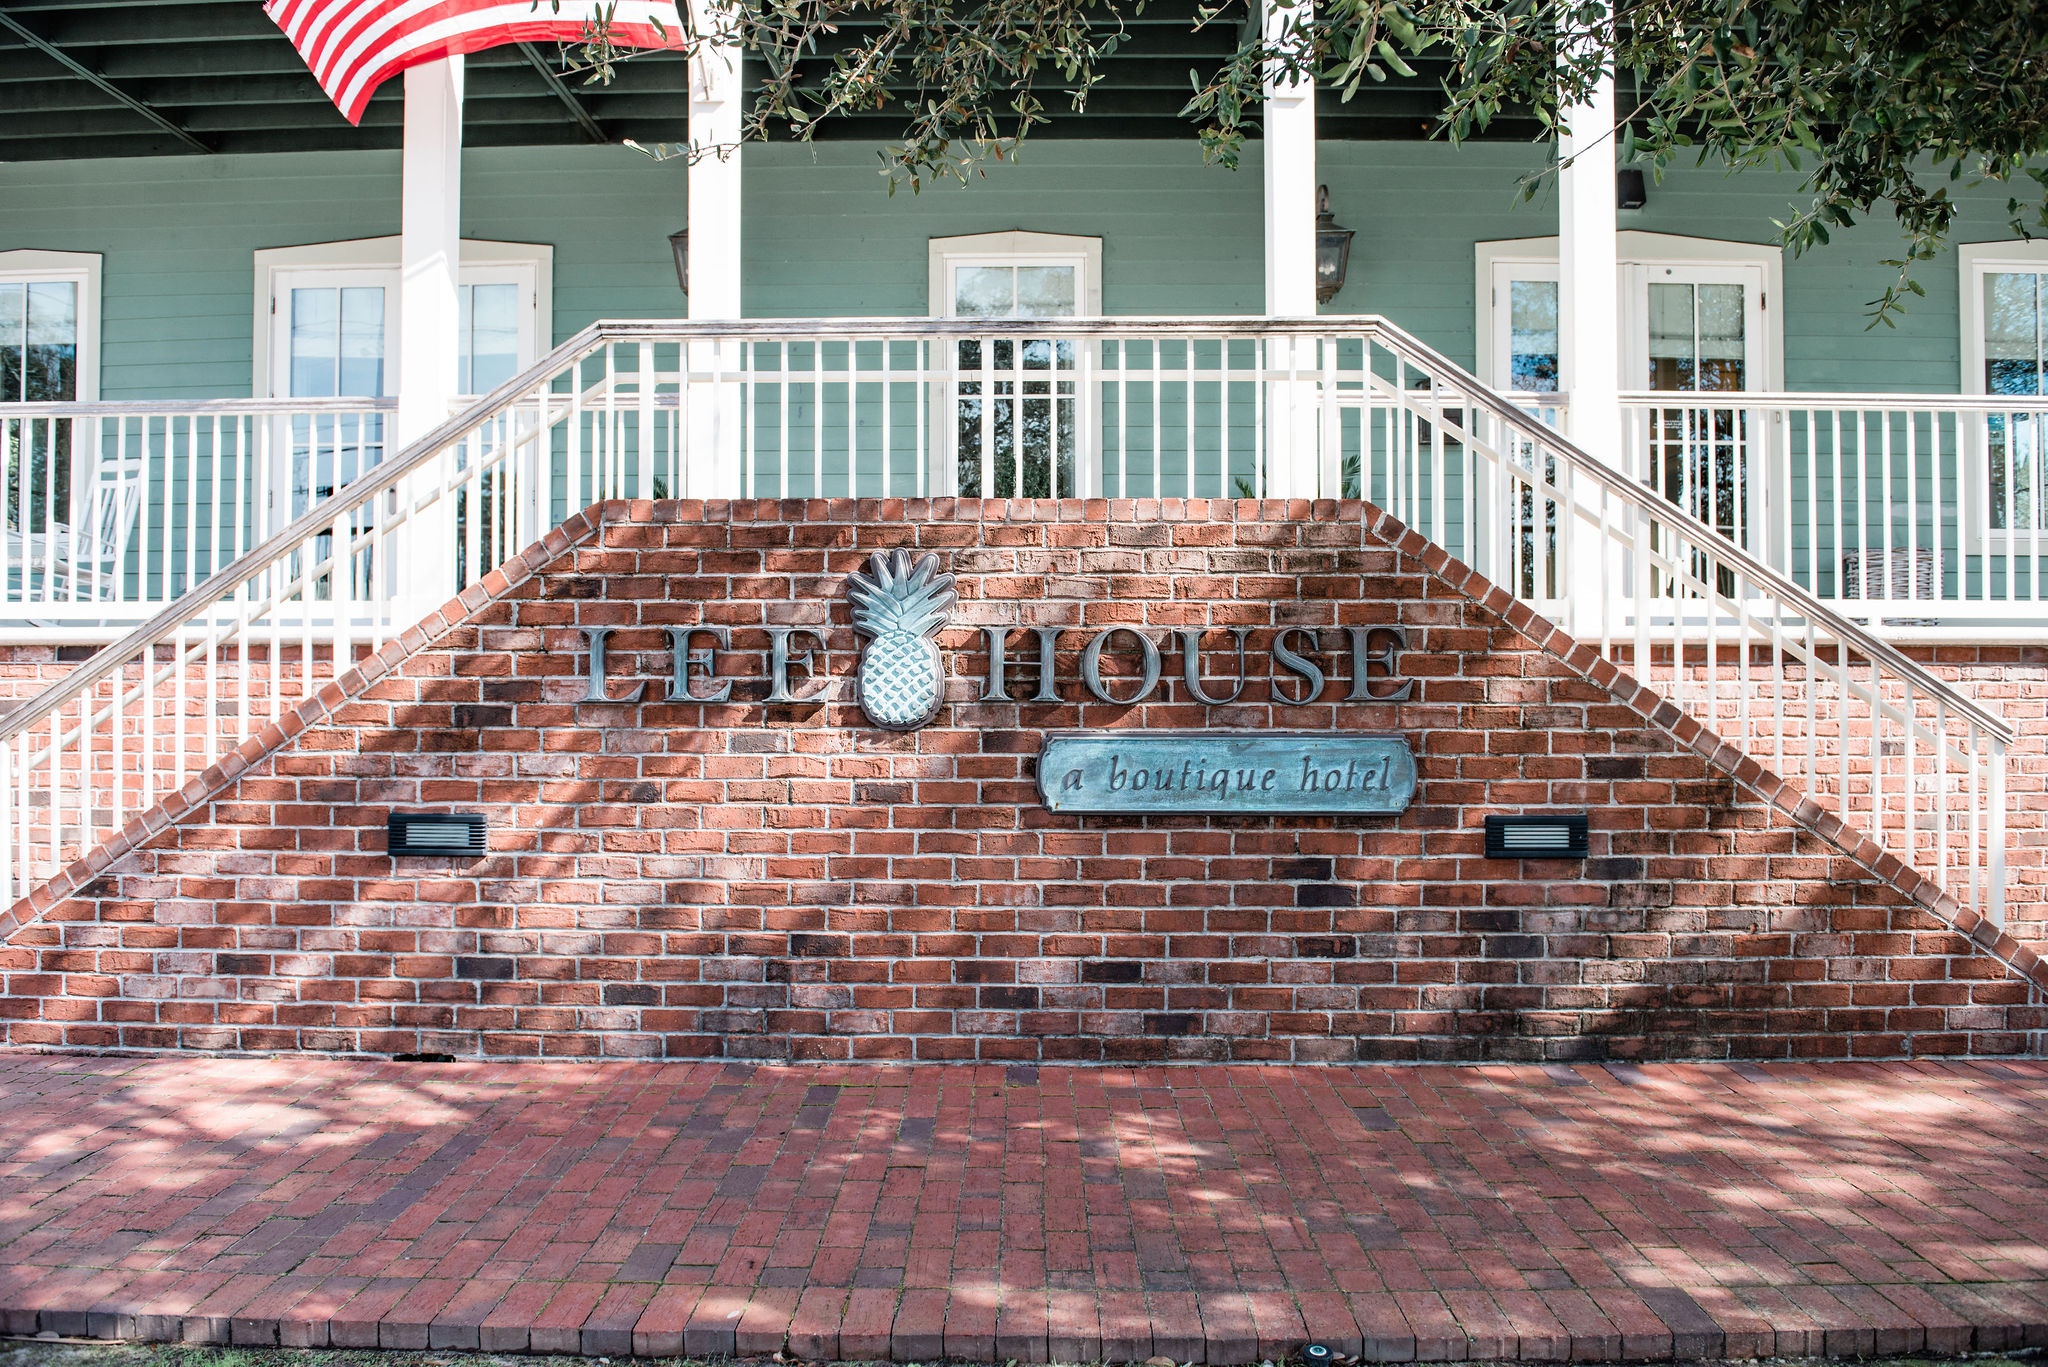 lee house pensacola florida.jpg